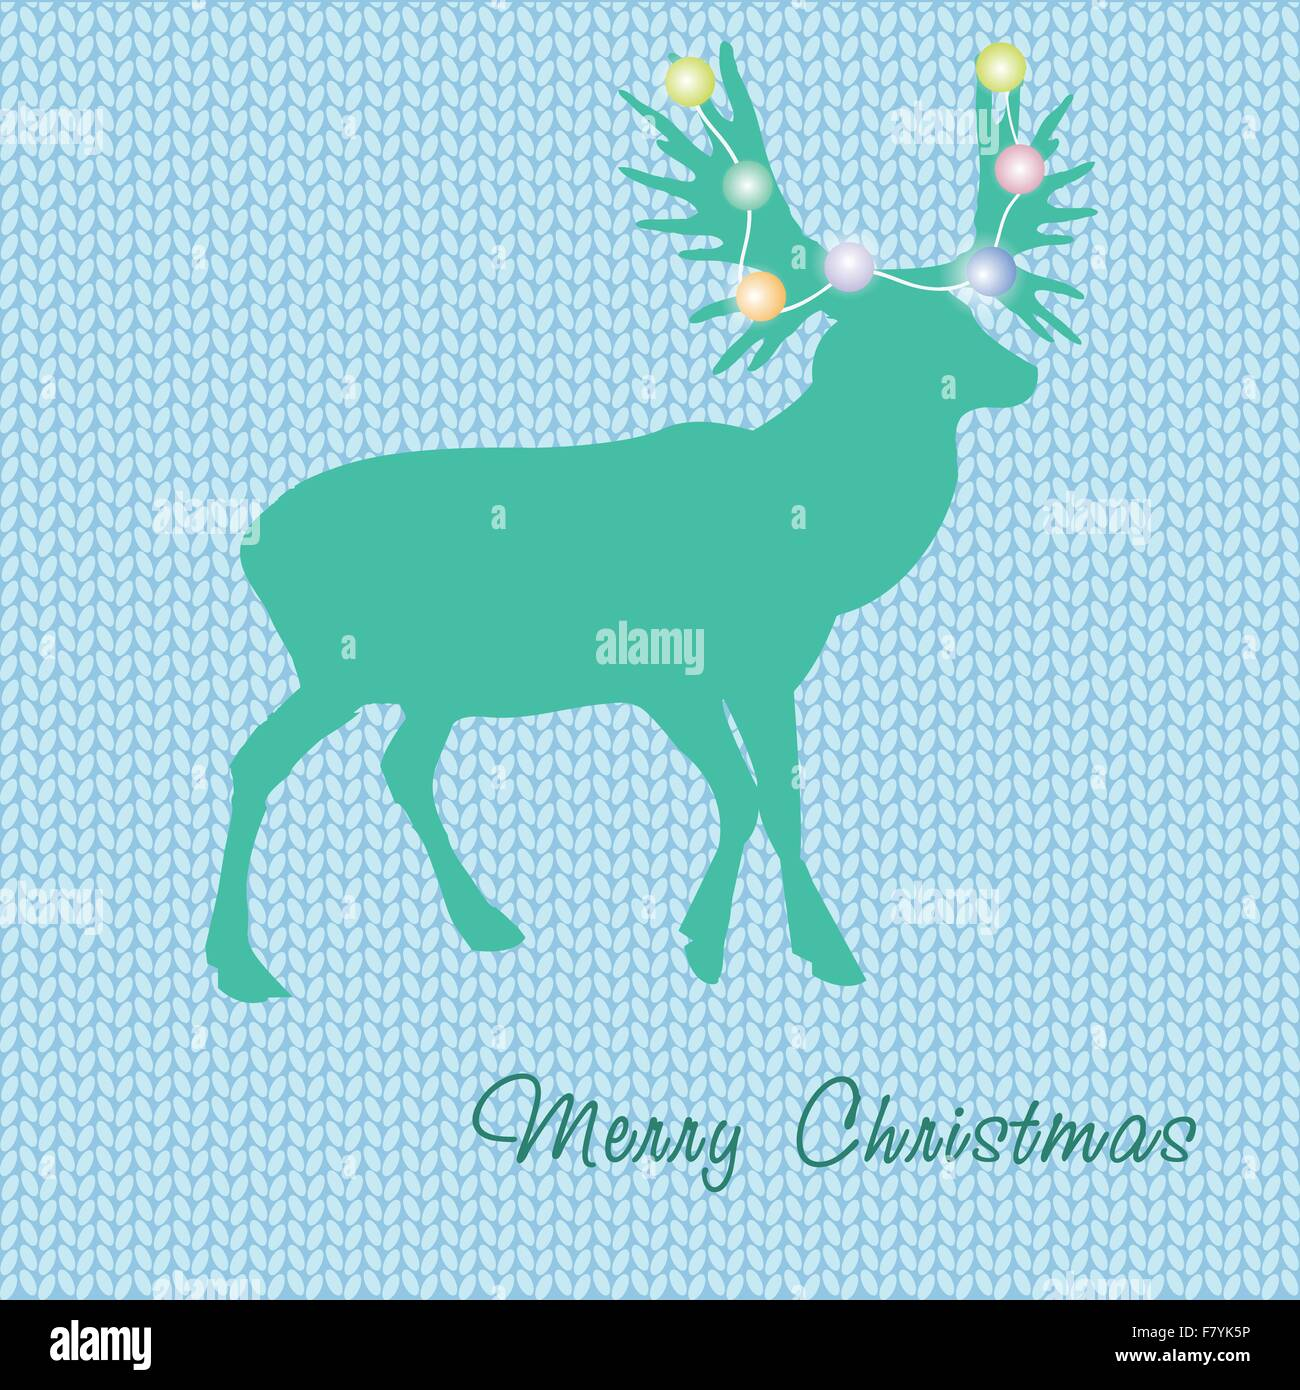 6410fa872331b Stock Vector. Enlarge. Christmas card with reindeer in Santa hat.